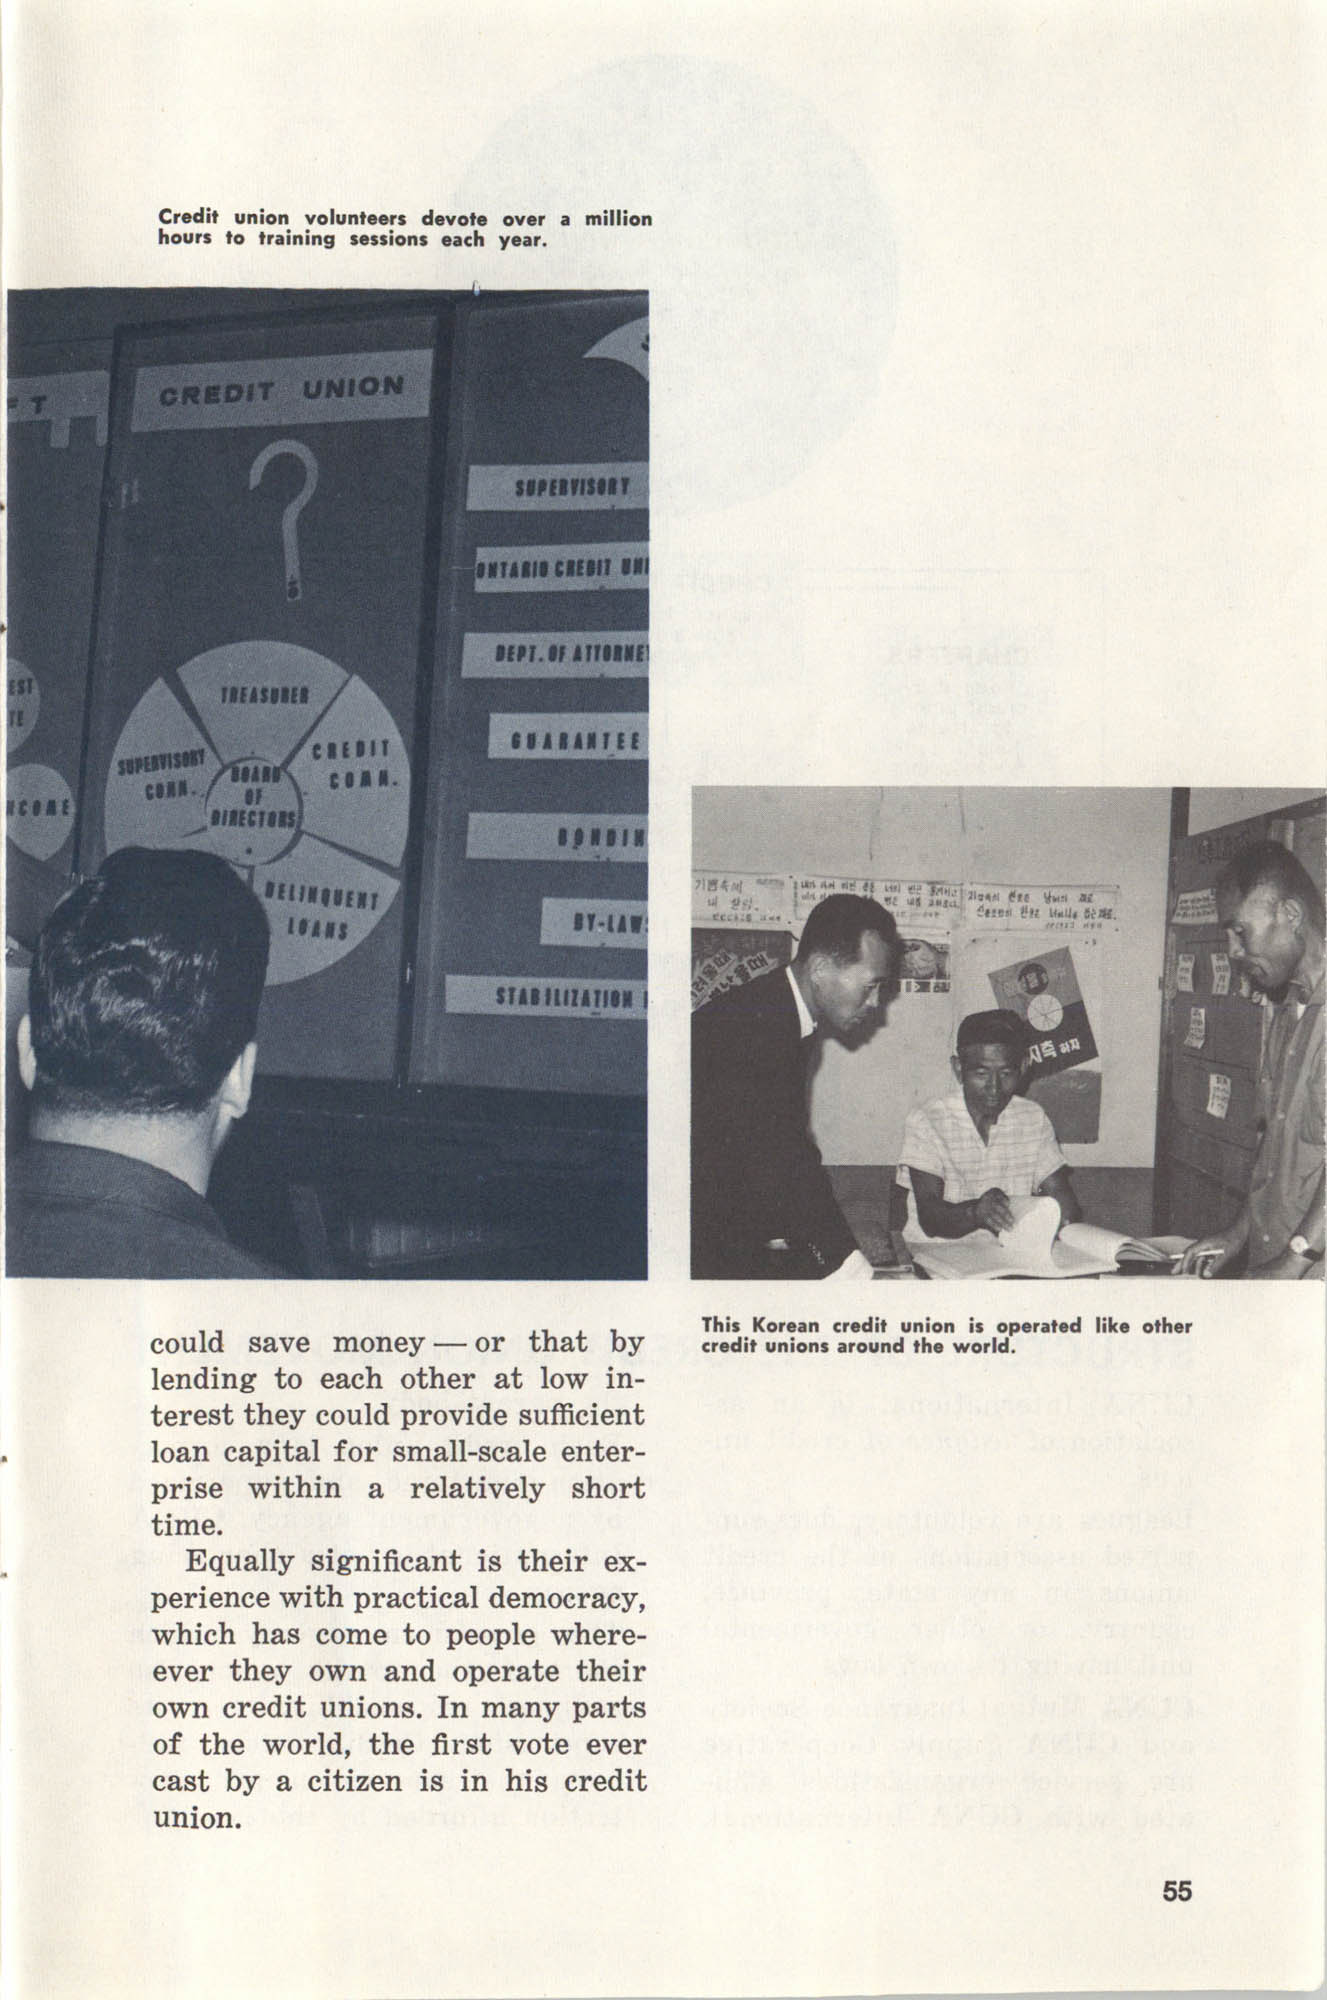 International Credit Union Yearbook, Page 55